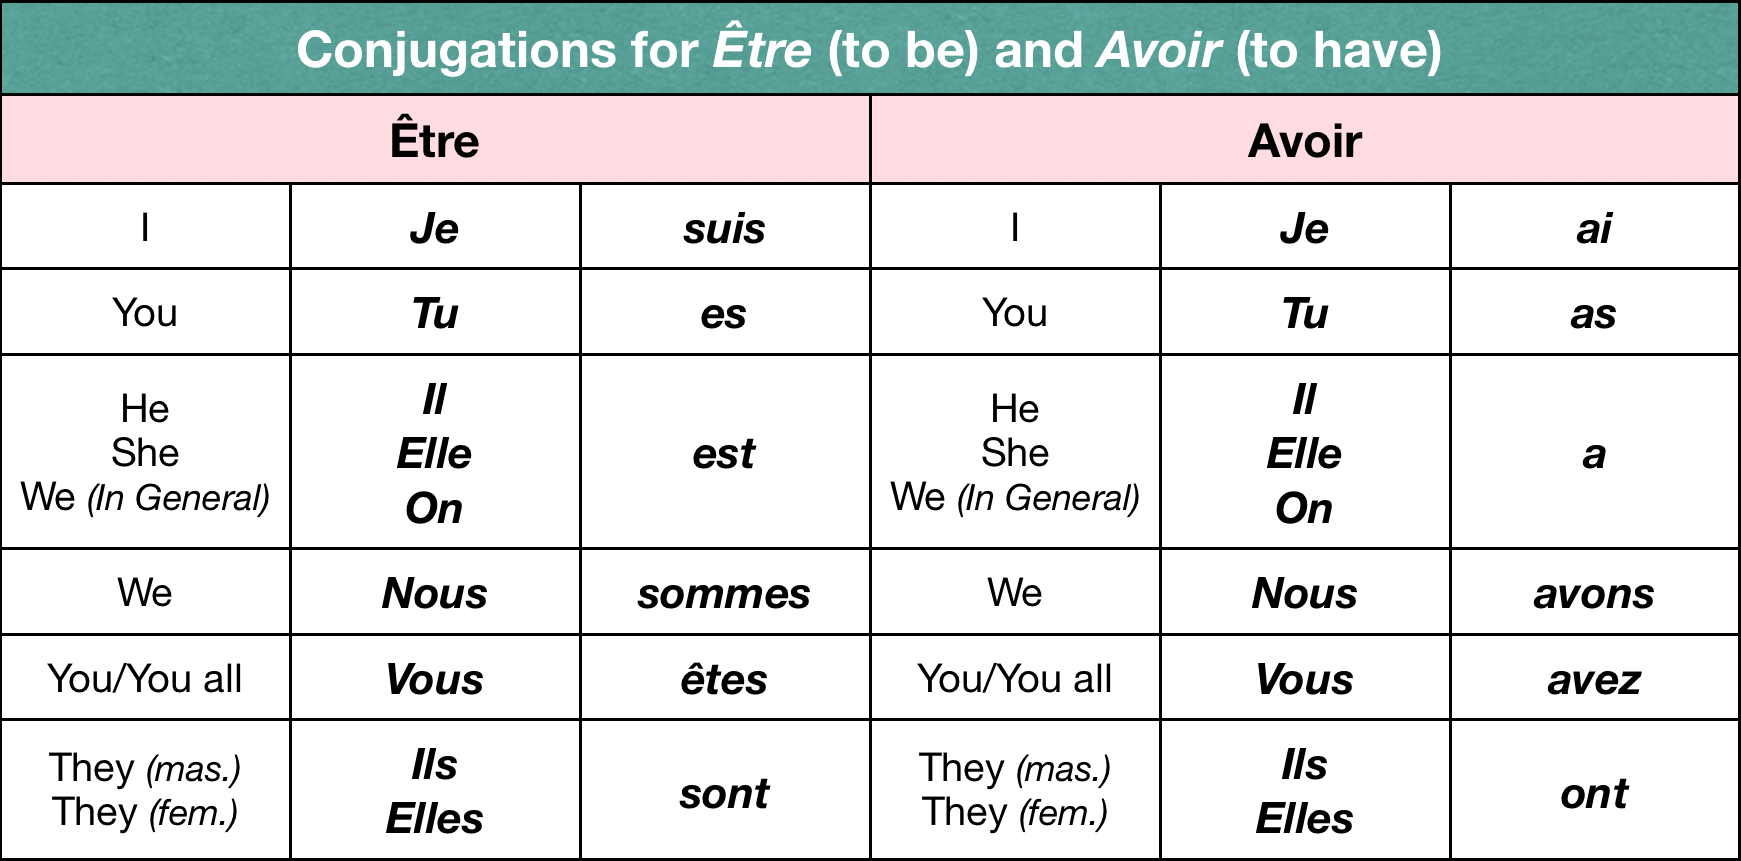 Conjugations for 'Être' (to be) and 'Avoir' (to have) — Learn French from Scratch